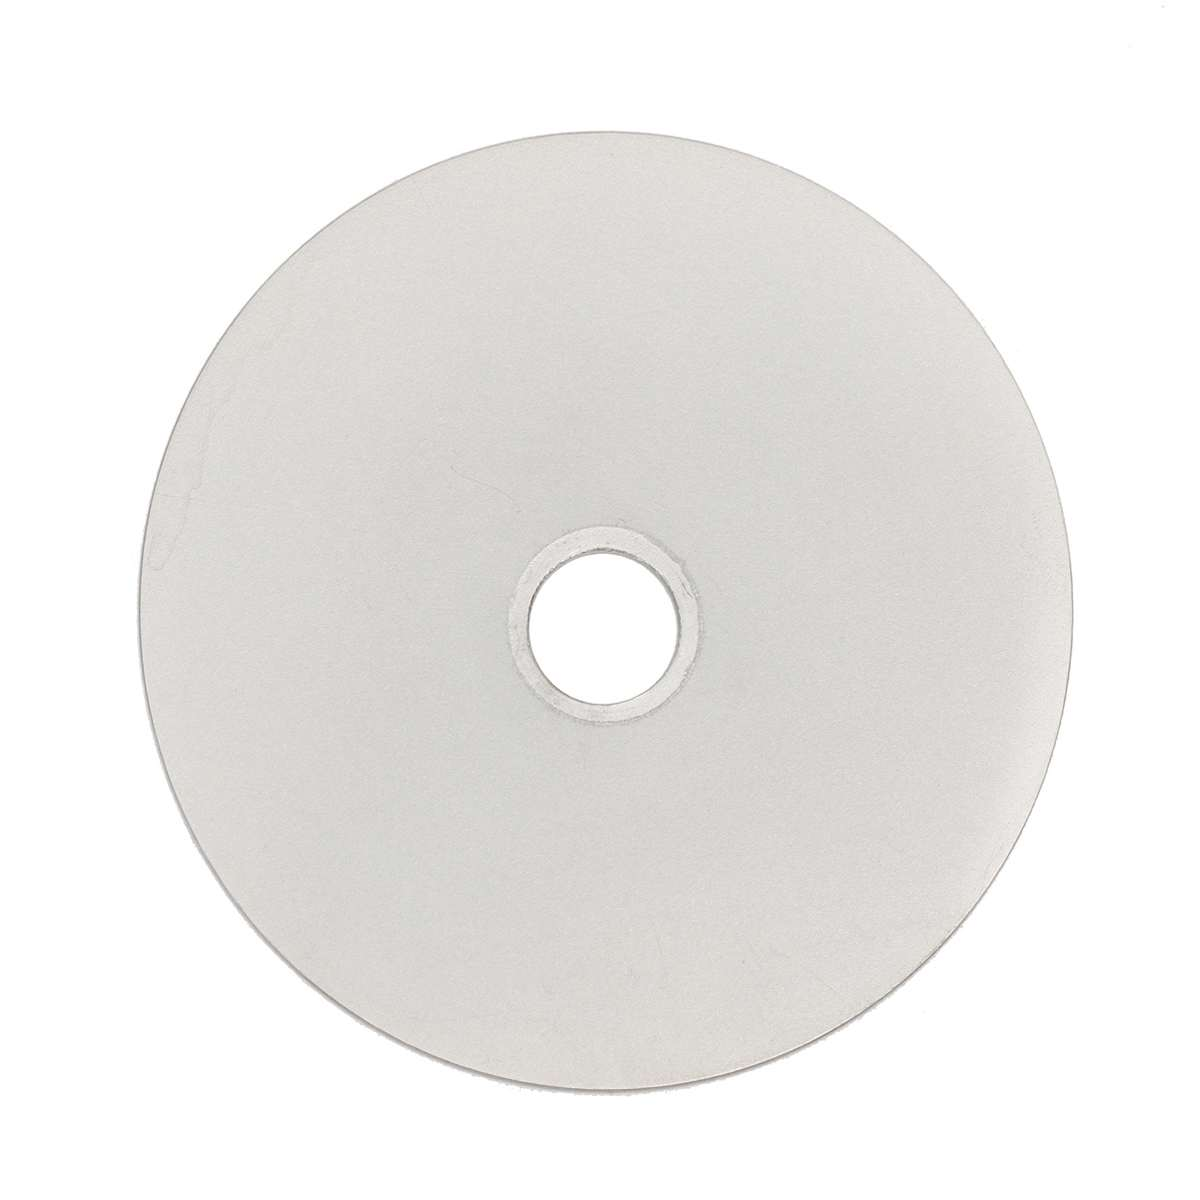 3000 Grit Diamond Coated Flat Lap Wheel Polishing Grinding Disc Grinding Wheel Rotary Tool Diamond Discs Accessories 4 Inch